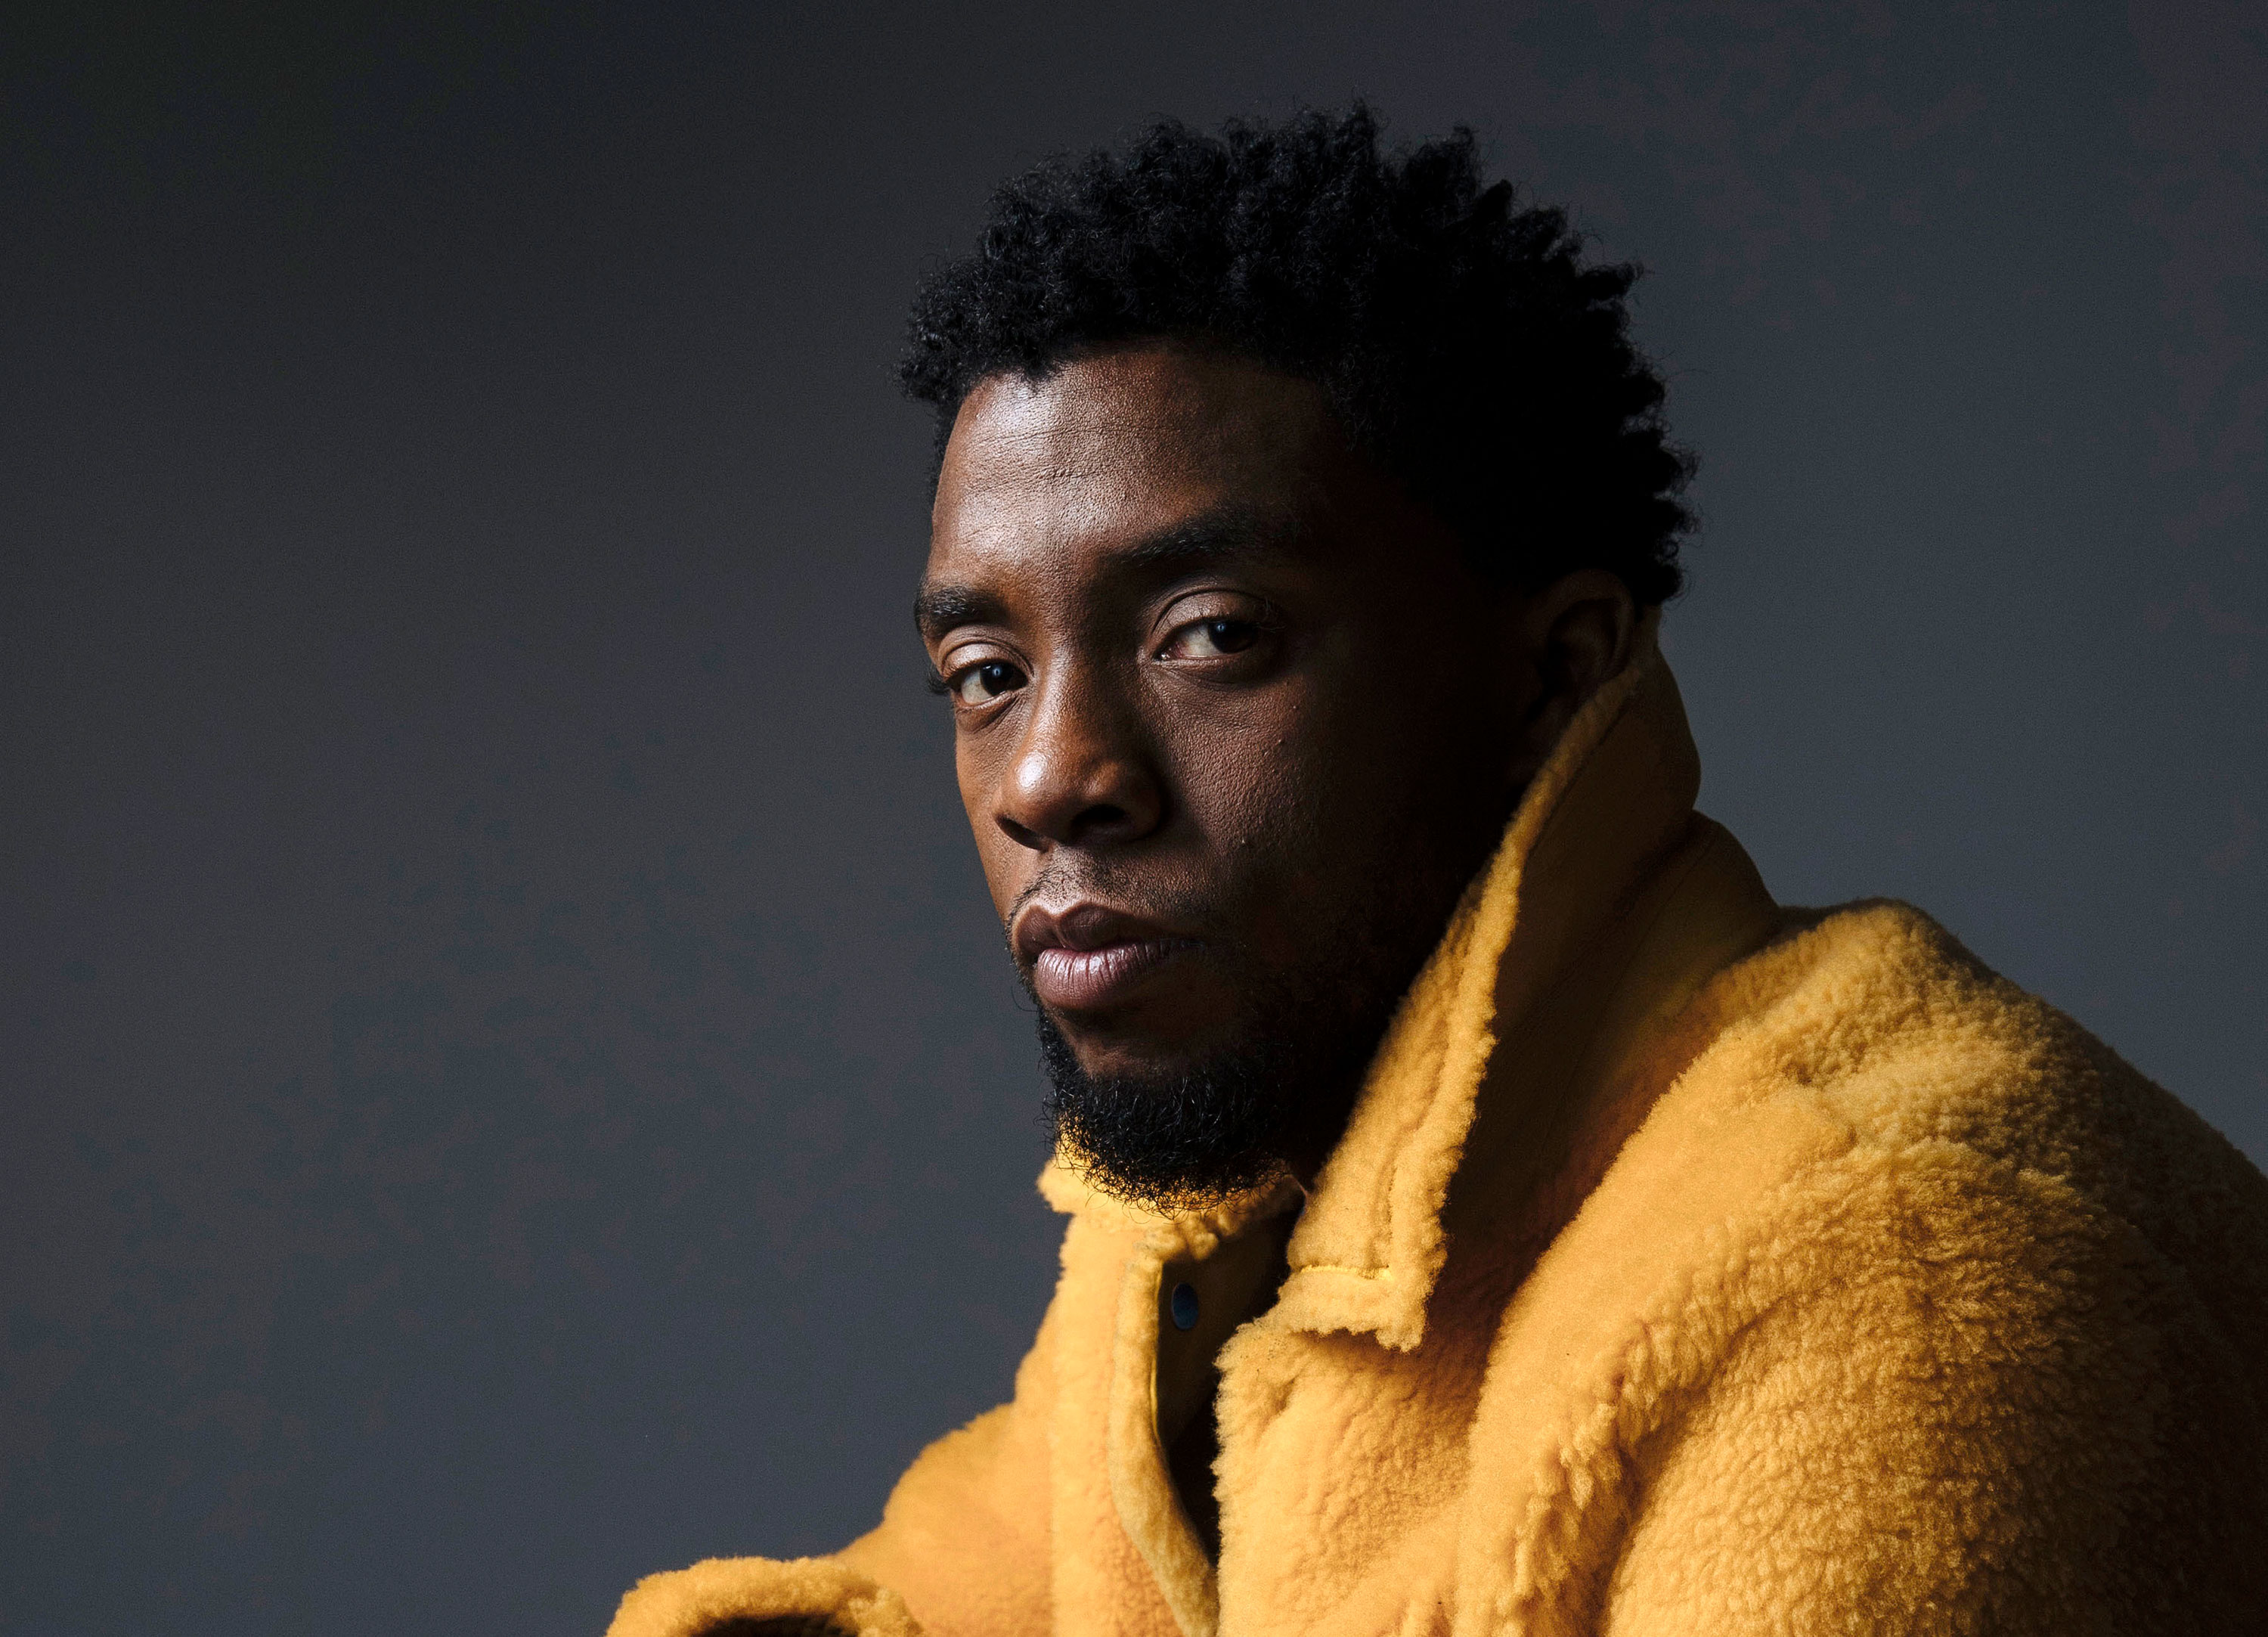 Black Panther Star Chadwick Boseman Dies At Age 43 Cnn Video